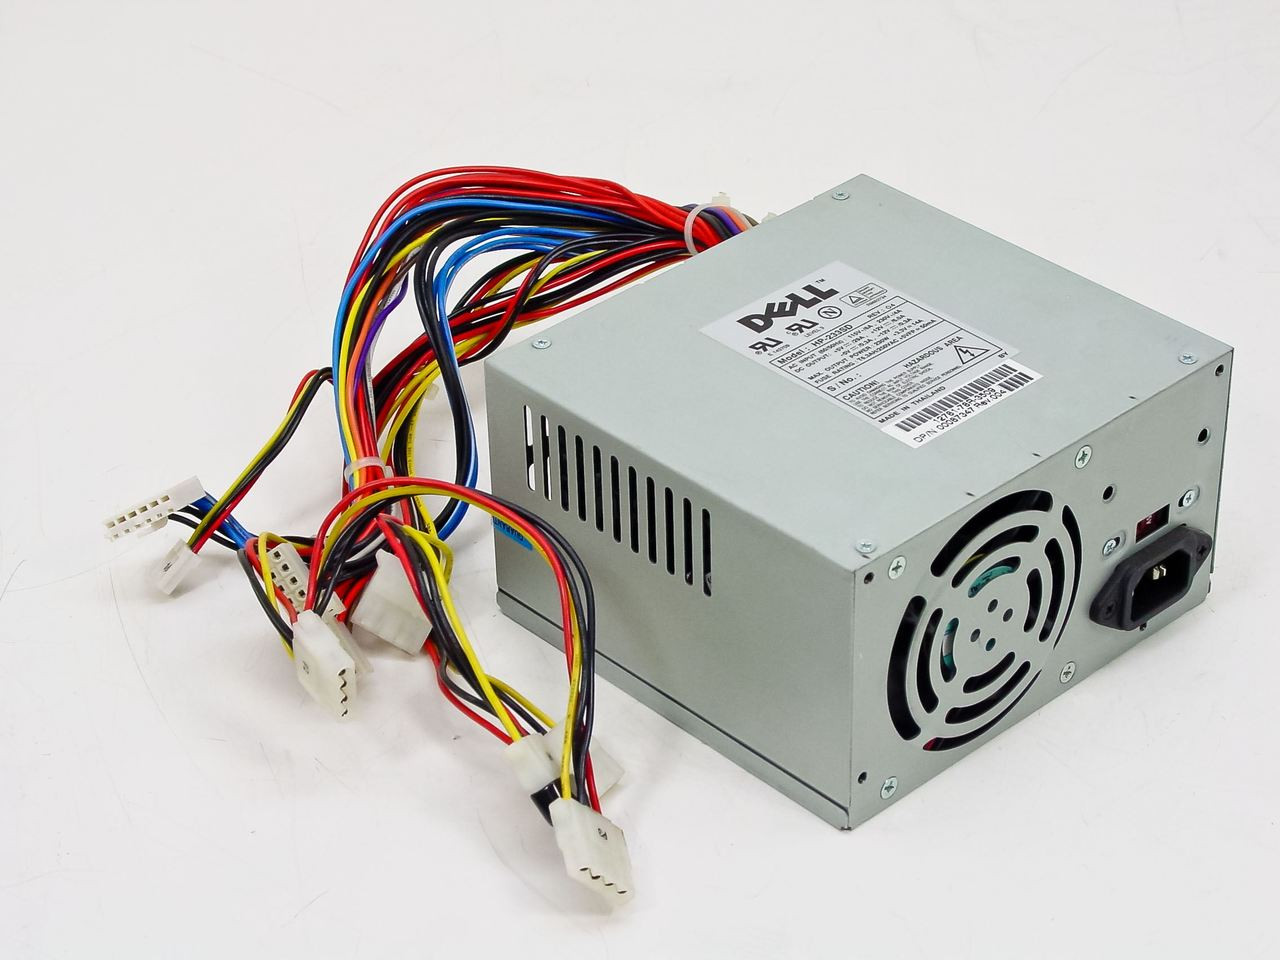 Power Supply Model H275p 01 Wiring Diagramsupply Diagram For Dell 230 W Atx Hp 233sd 87347 2118 552901489924147c